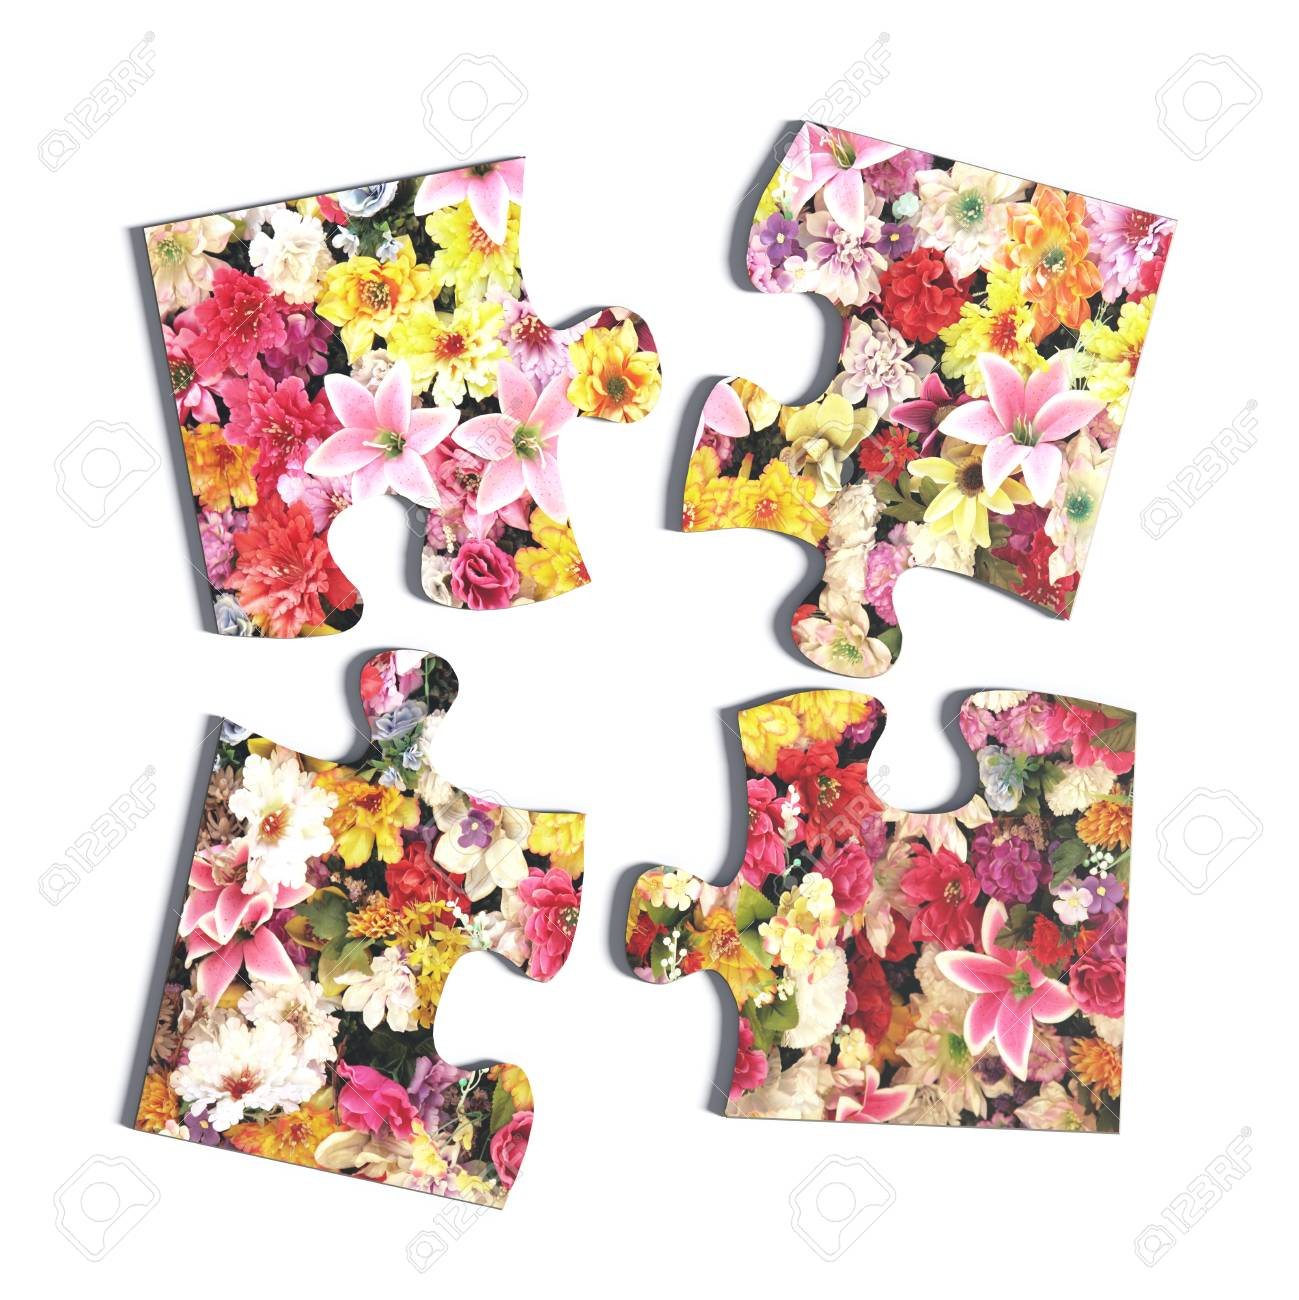 3D Rendering Of Four Puzzle Pieces With Flower Print On White - Print On Puzzle Pieces